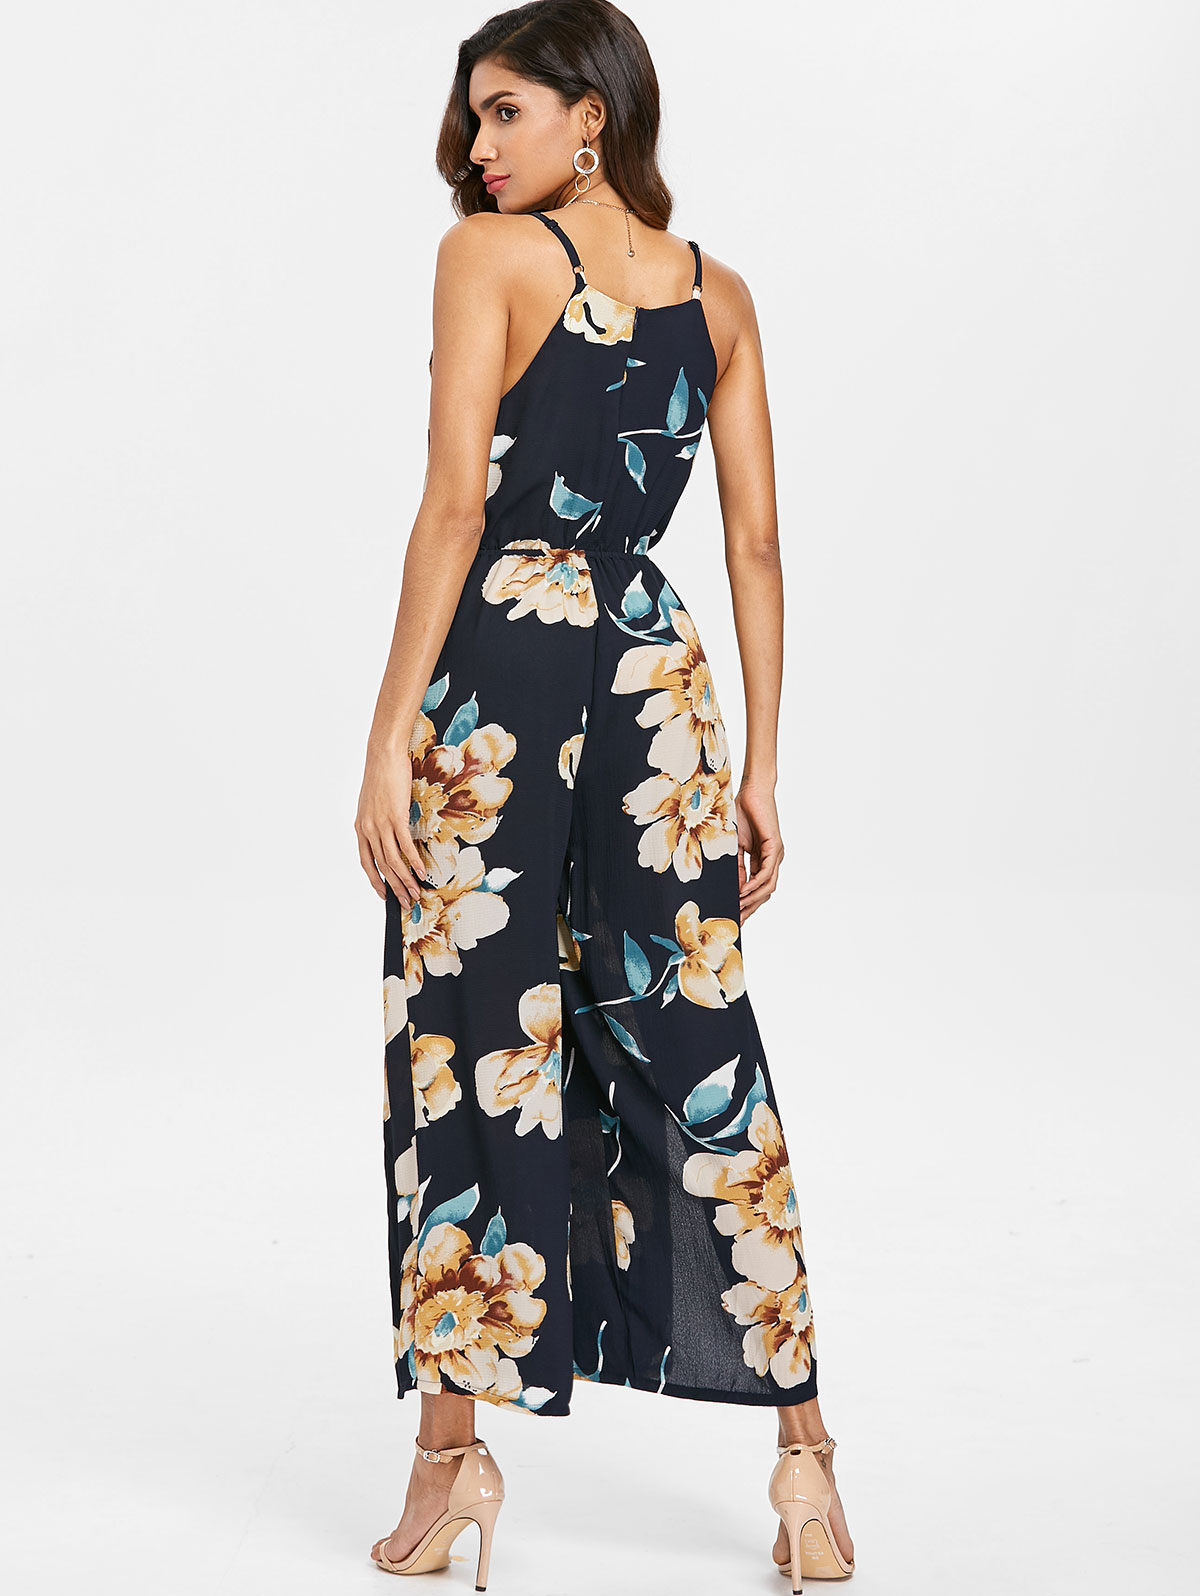 AZULINA Front Slit Floral Print Jumpsuit Summer Boho Beach Women Rompers Long Overalls Bohemian Causal Ladies Clothes Jumpsuits